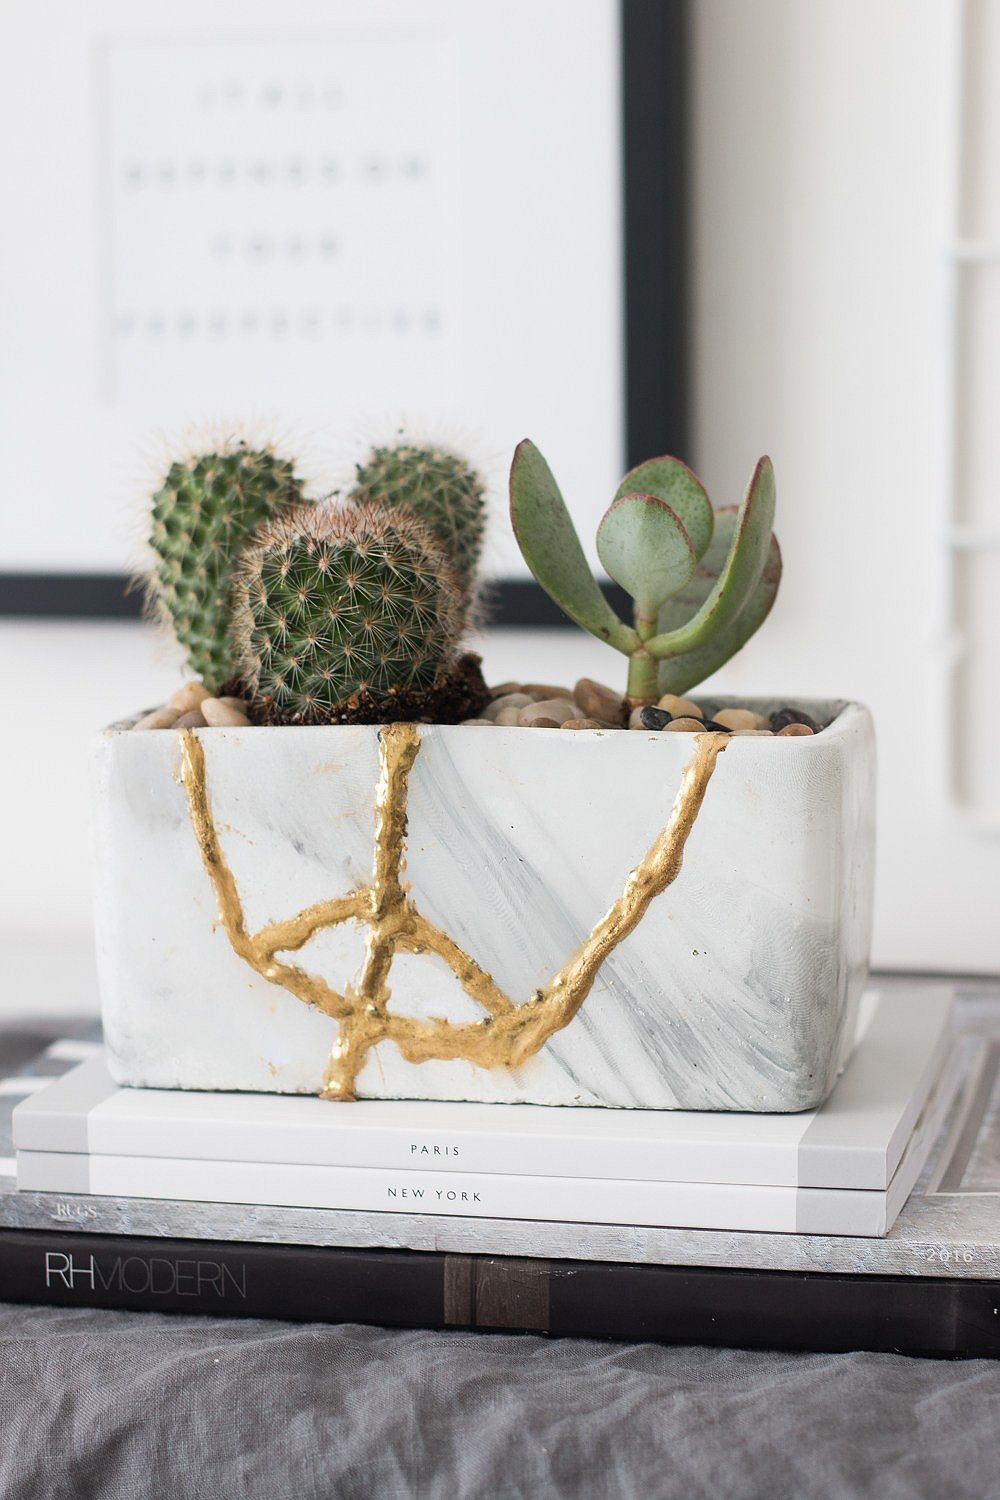 A closer look at the unique DIY Kintsugi planter with metallic glint